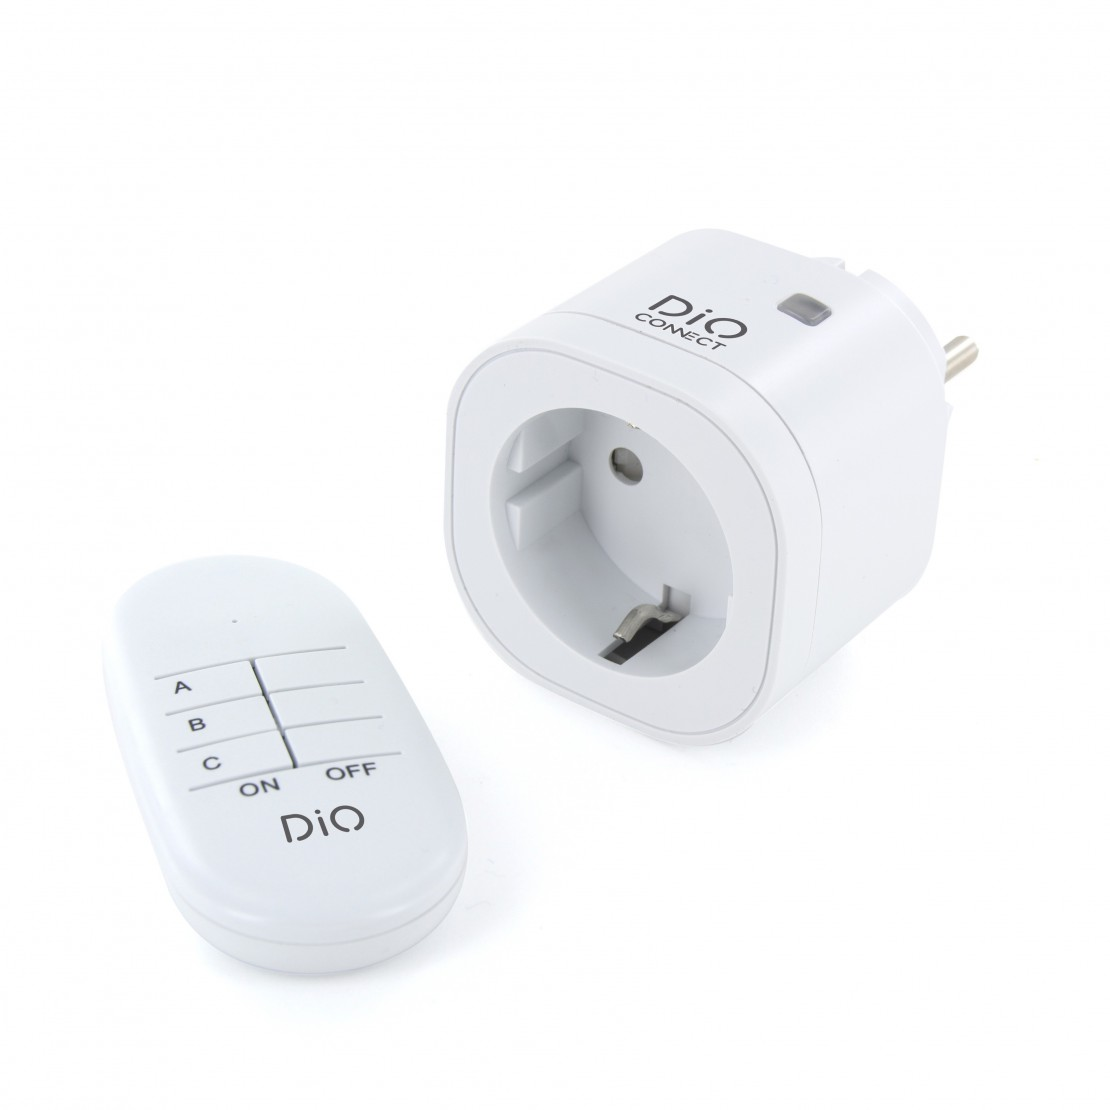 Connected and remote-controlled plug DiO Connect with remote control